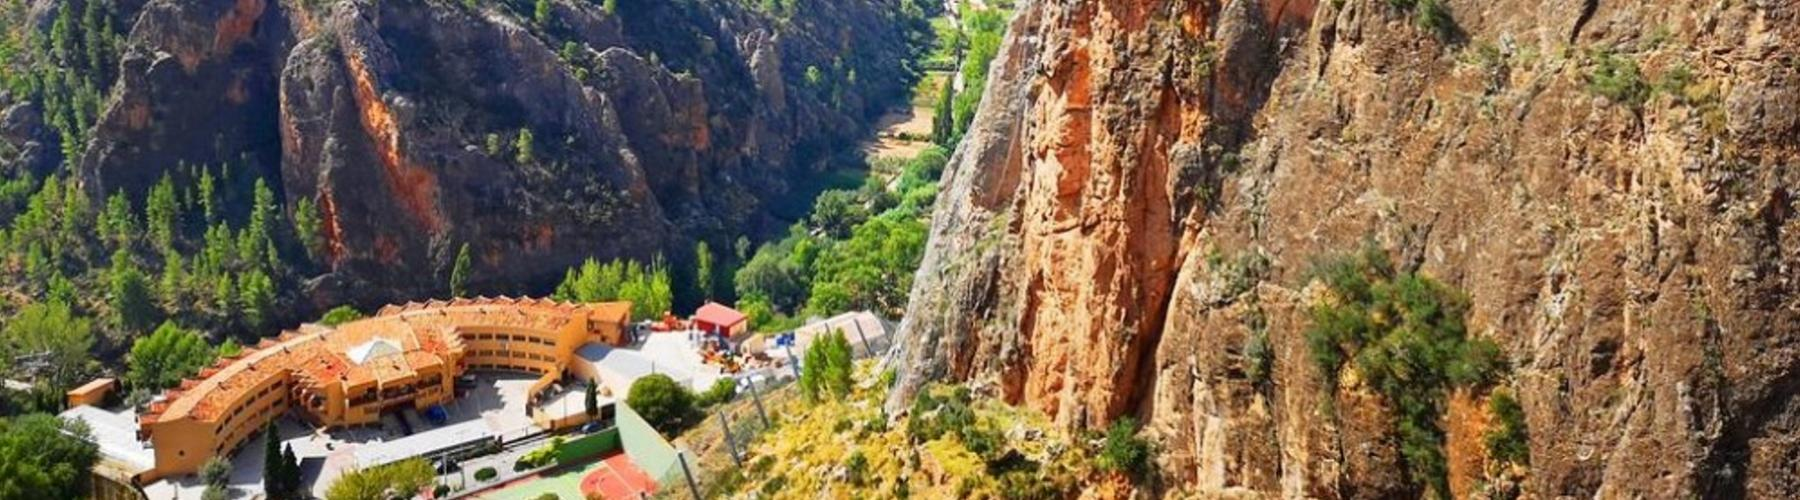 Coach Tour 14th-17th September Scenic Escape Ayna